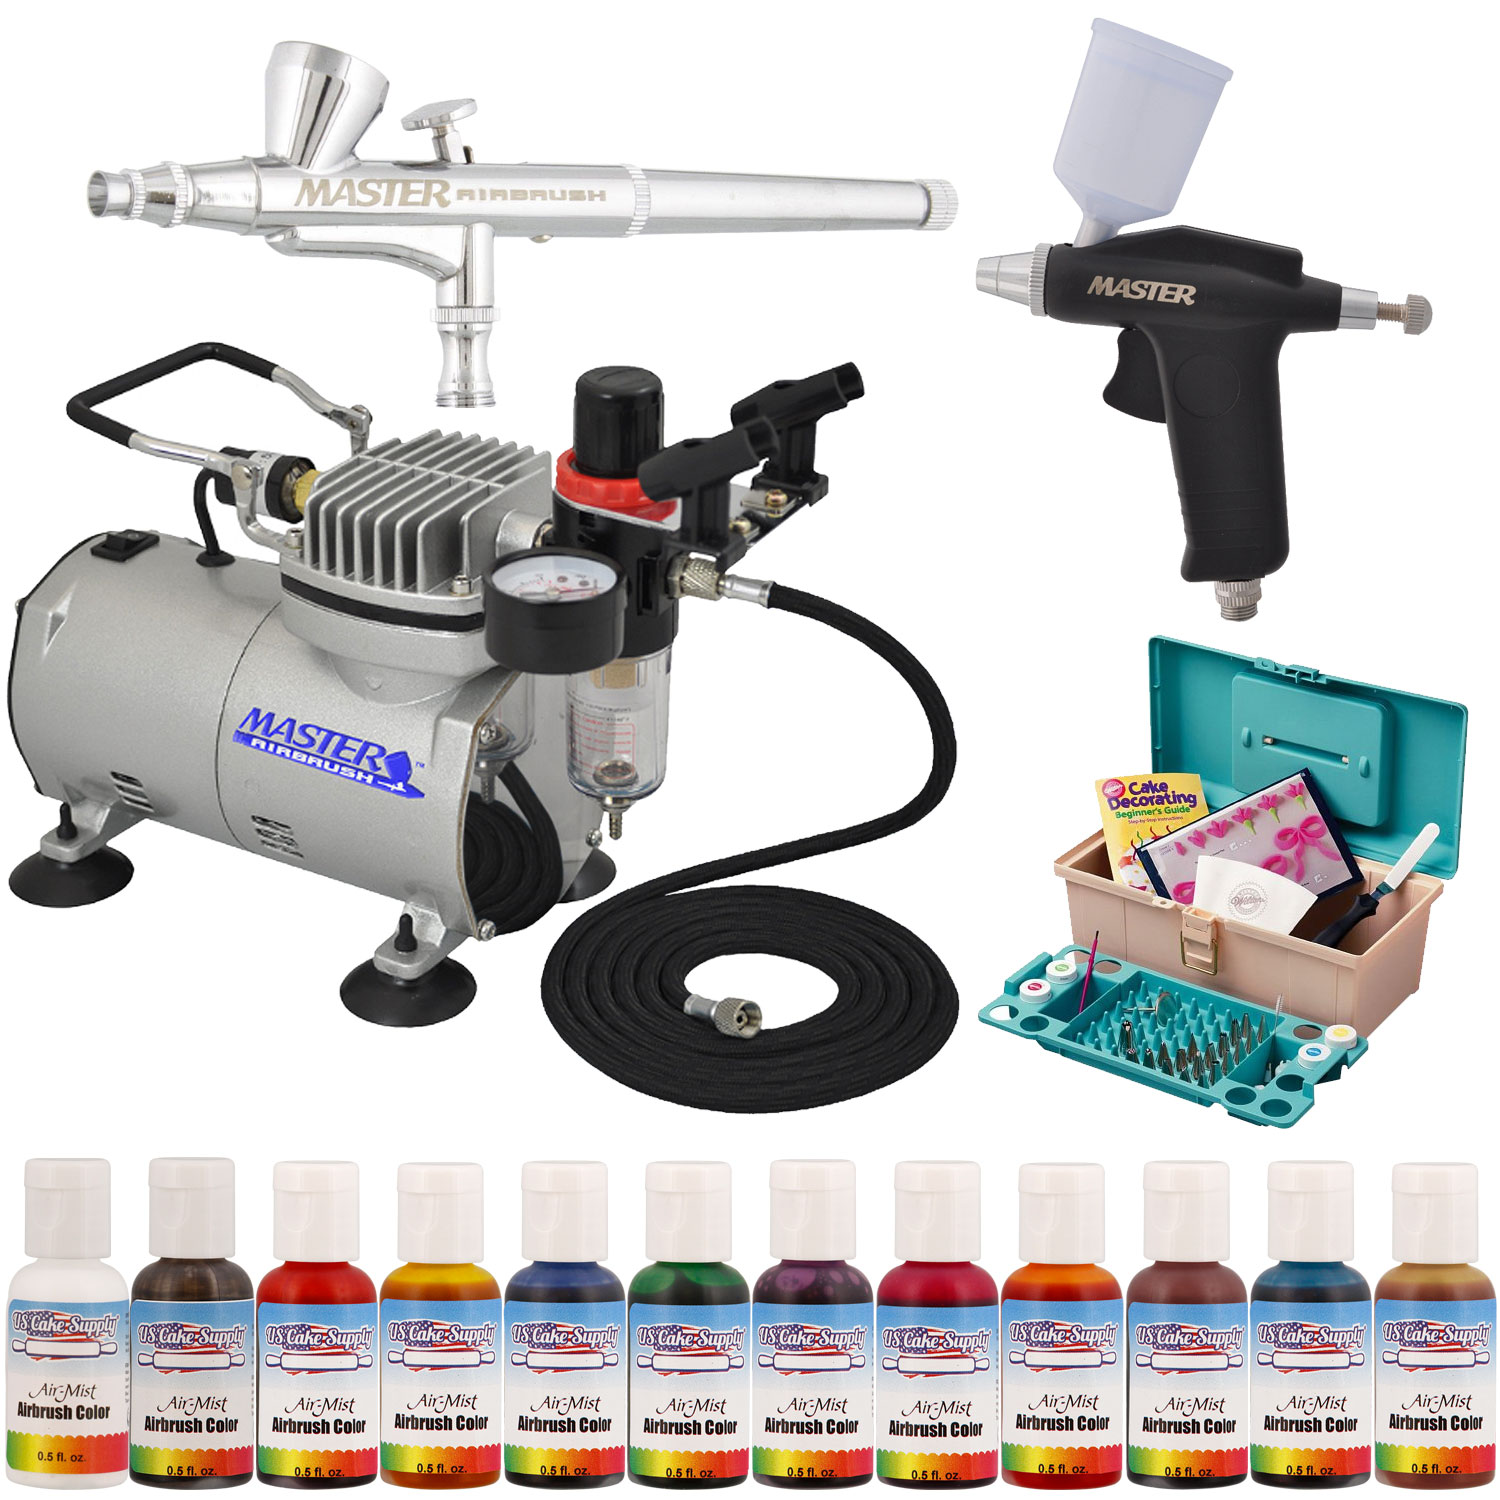 Cake Decorating Airbrush Wilton : Wilton 50 Cake Decorating Tools w 2 Airbrush Compressor eBay